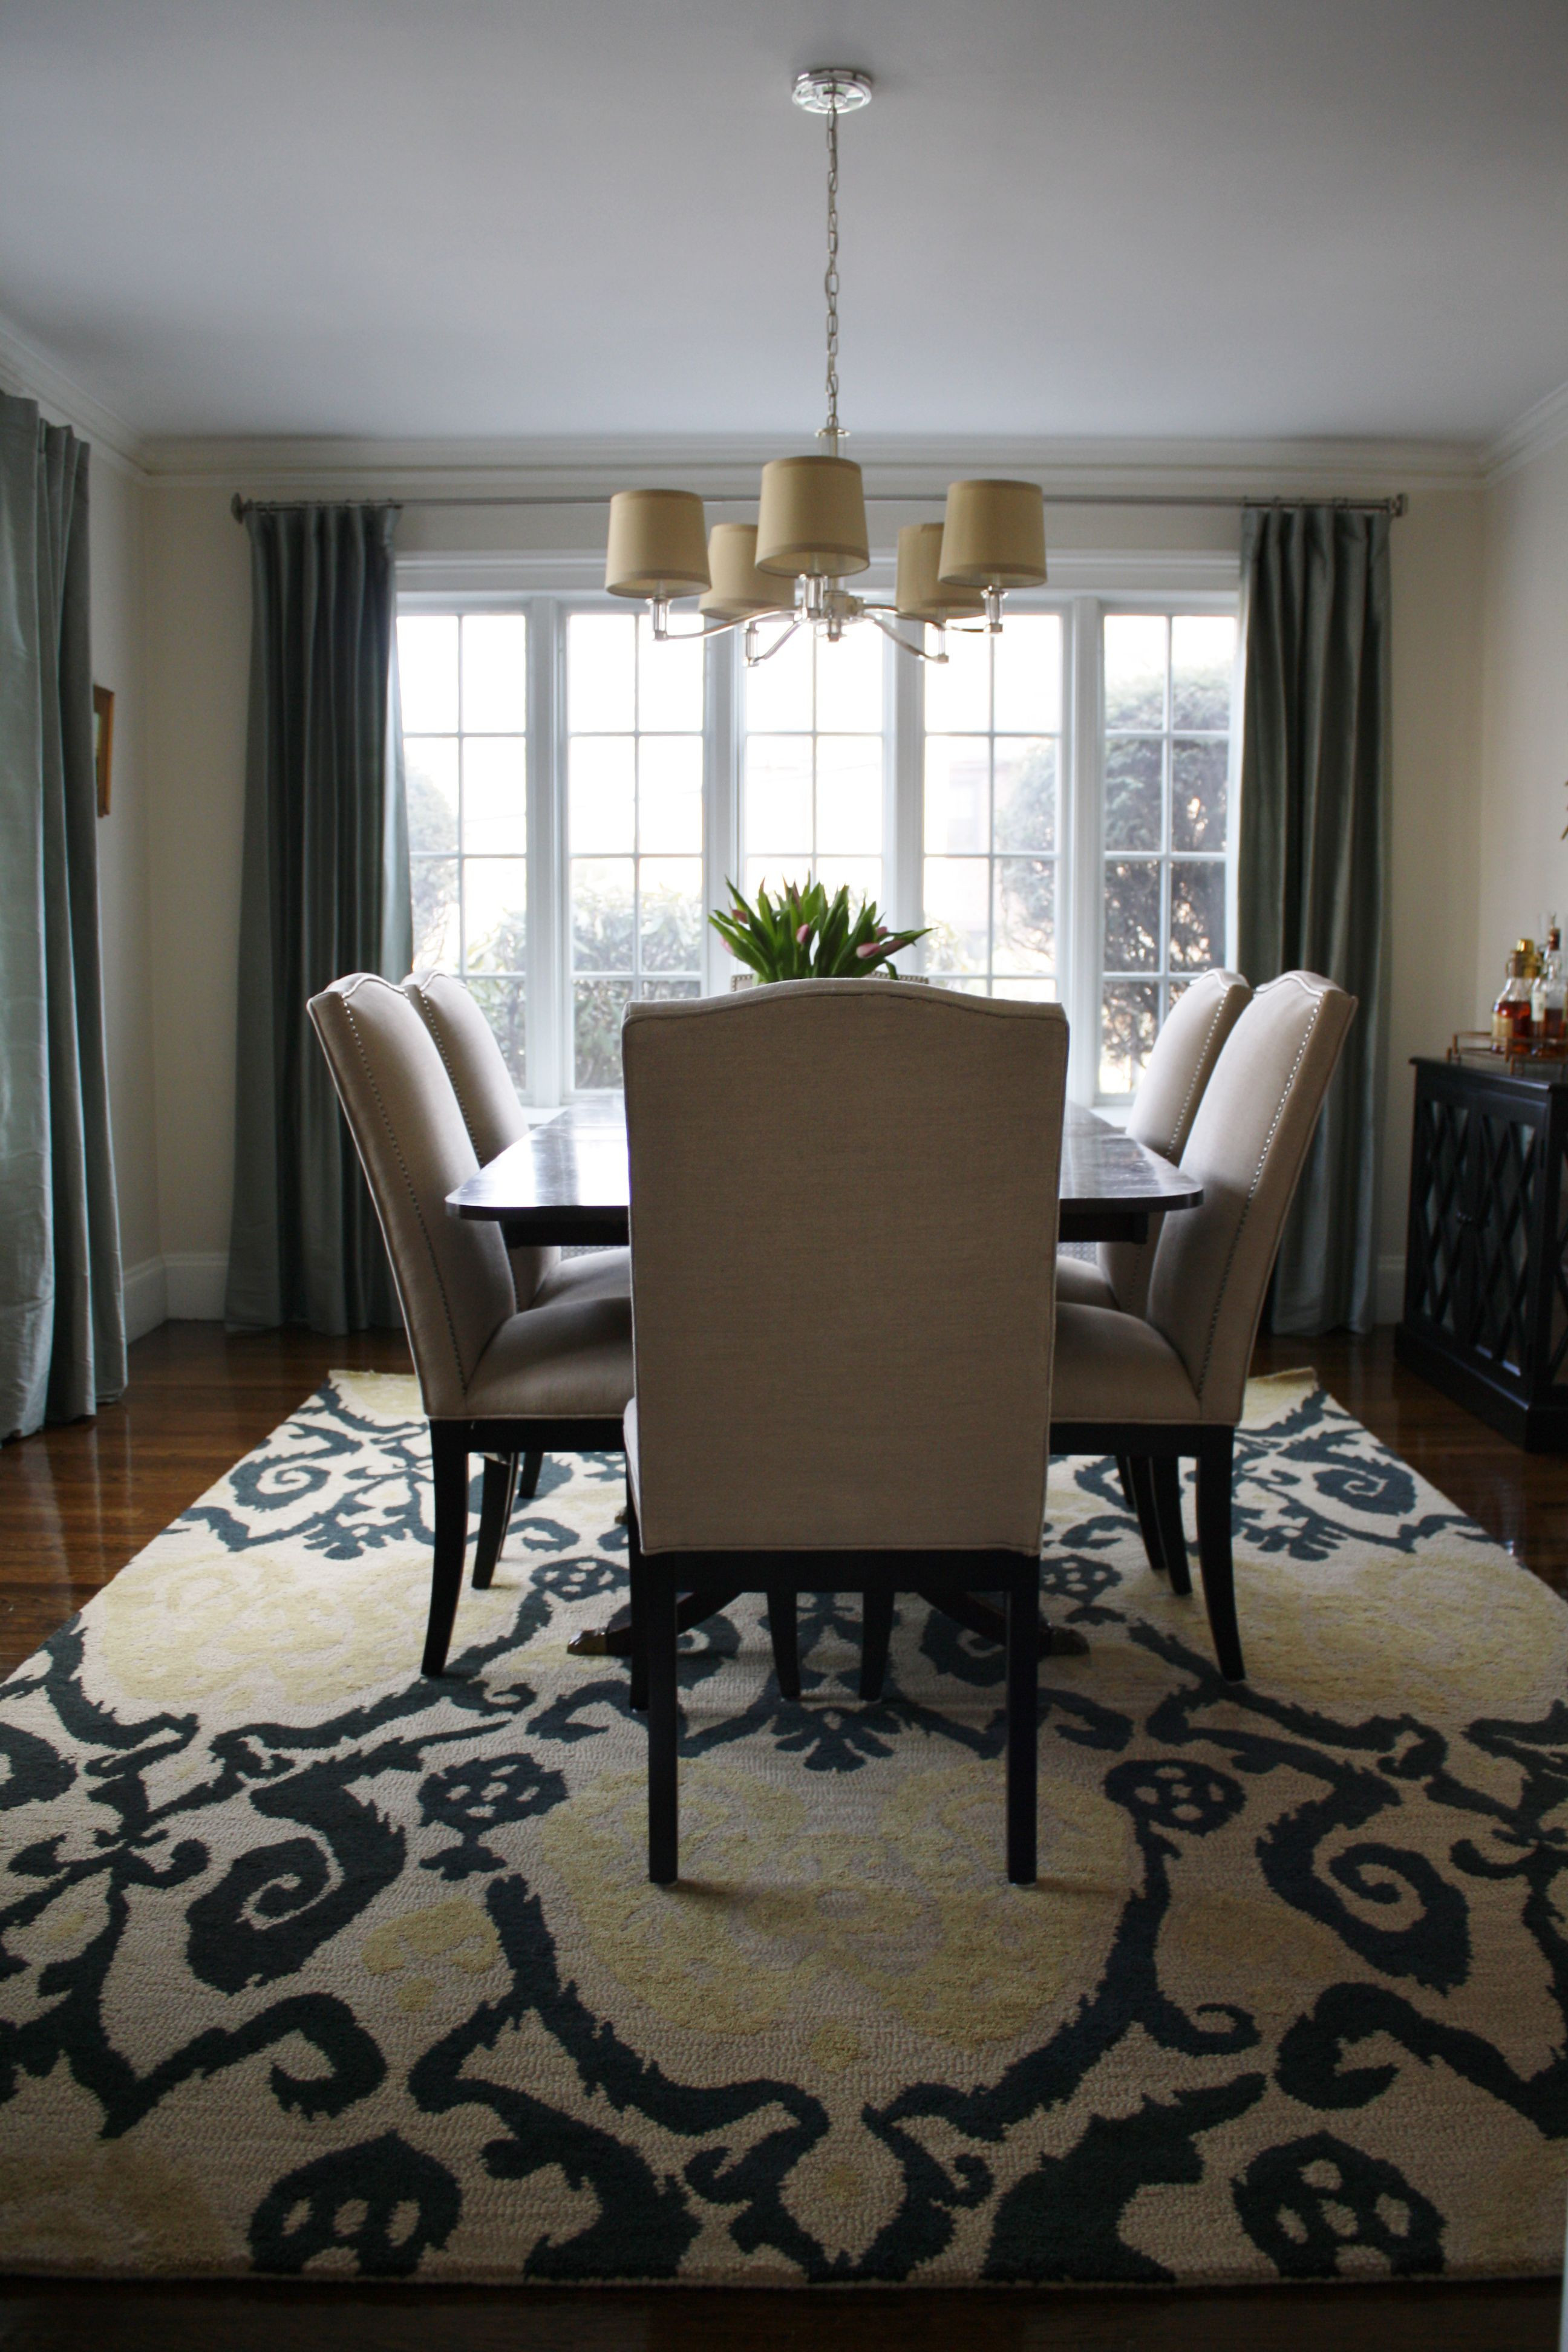 Best ideas about Rugs For Dining Room . Save or Pin Some Tips and ideas for Choosing and Applying the Right Now.